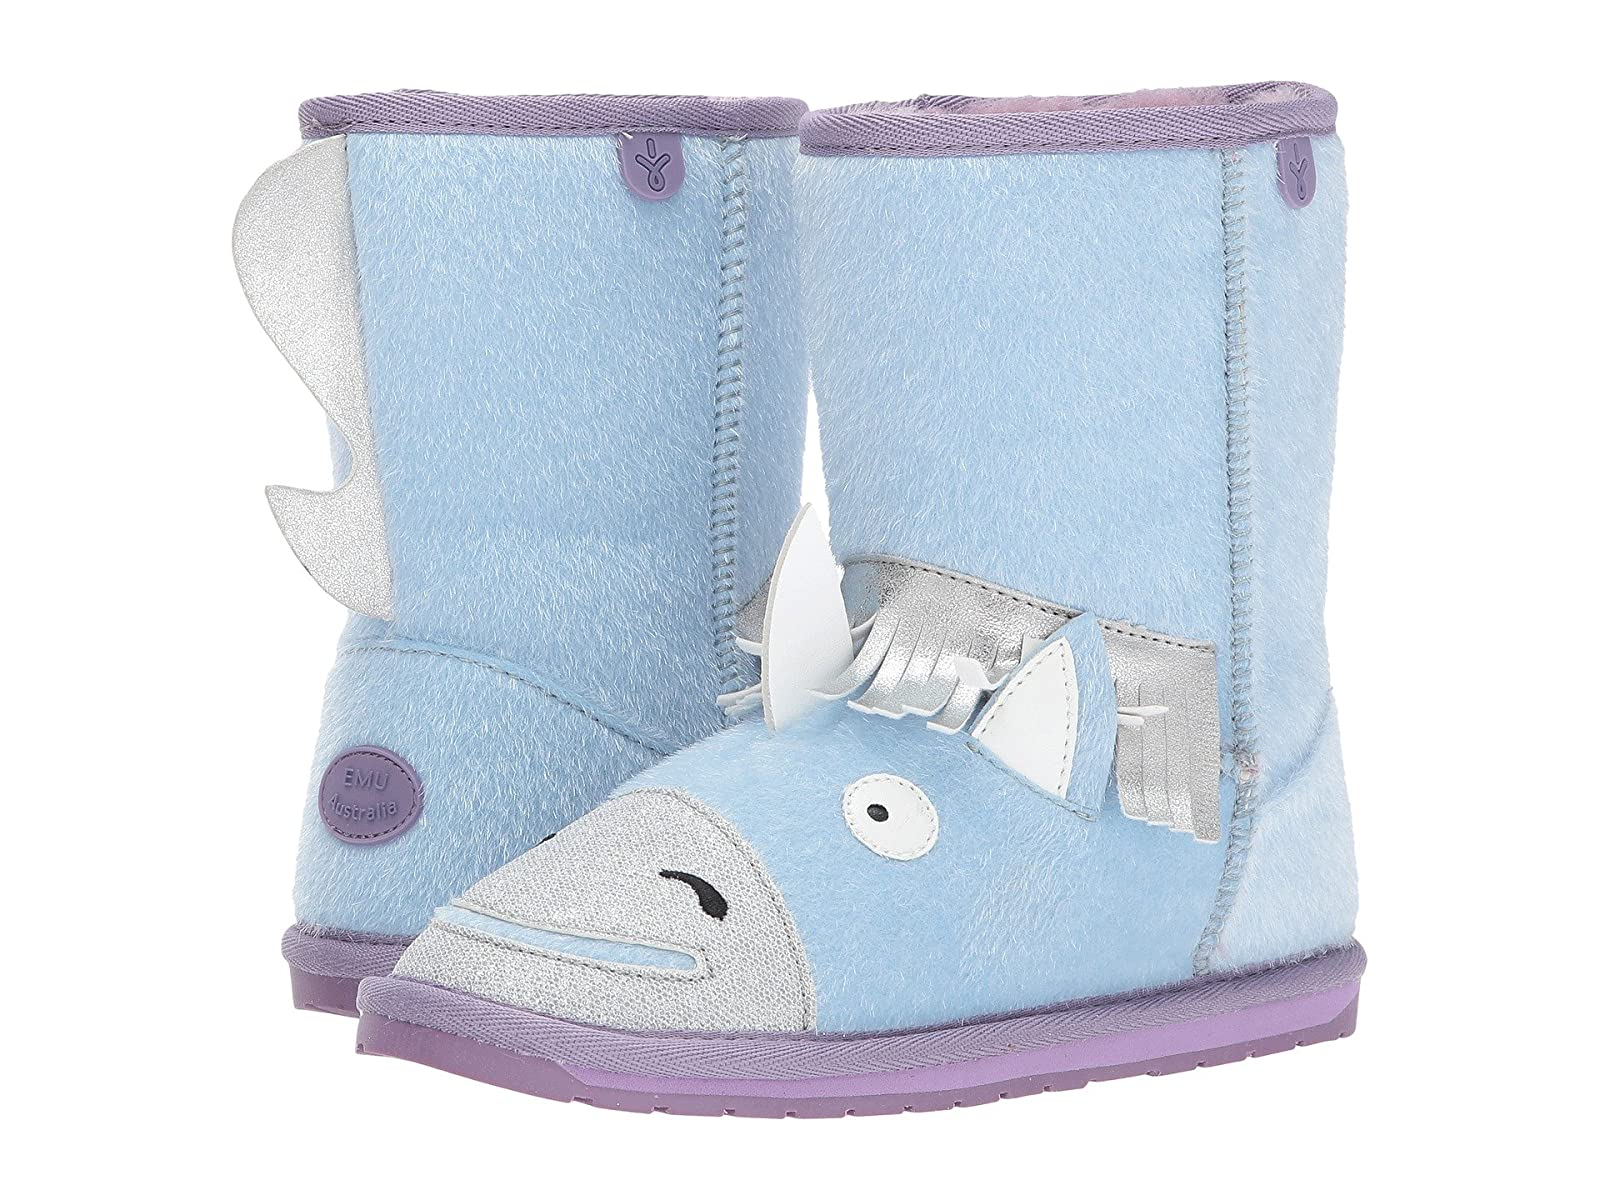 EMU Australia Kids Little Creatures Unicorn (Toddler/Little Kid/Big Kid)Affordable and distinctive shoes